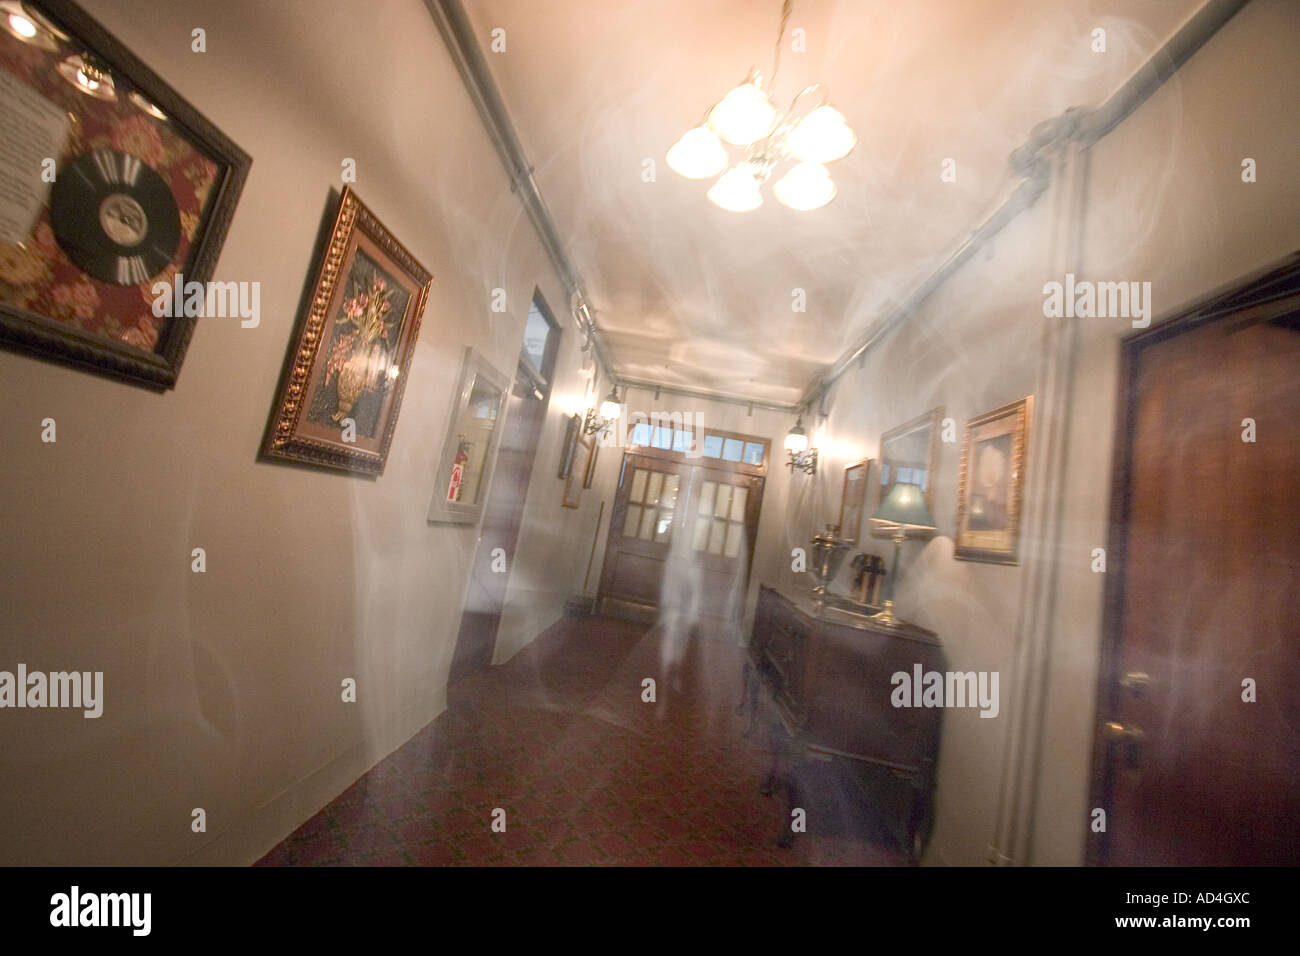 Two Ghosts in Hotel Hallway - Stock Image